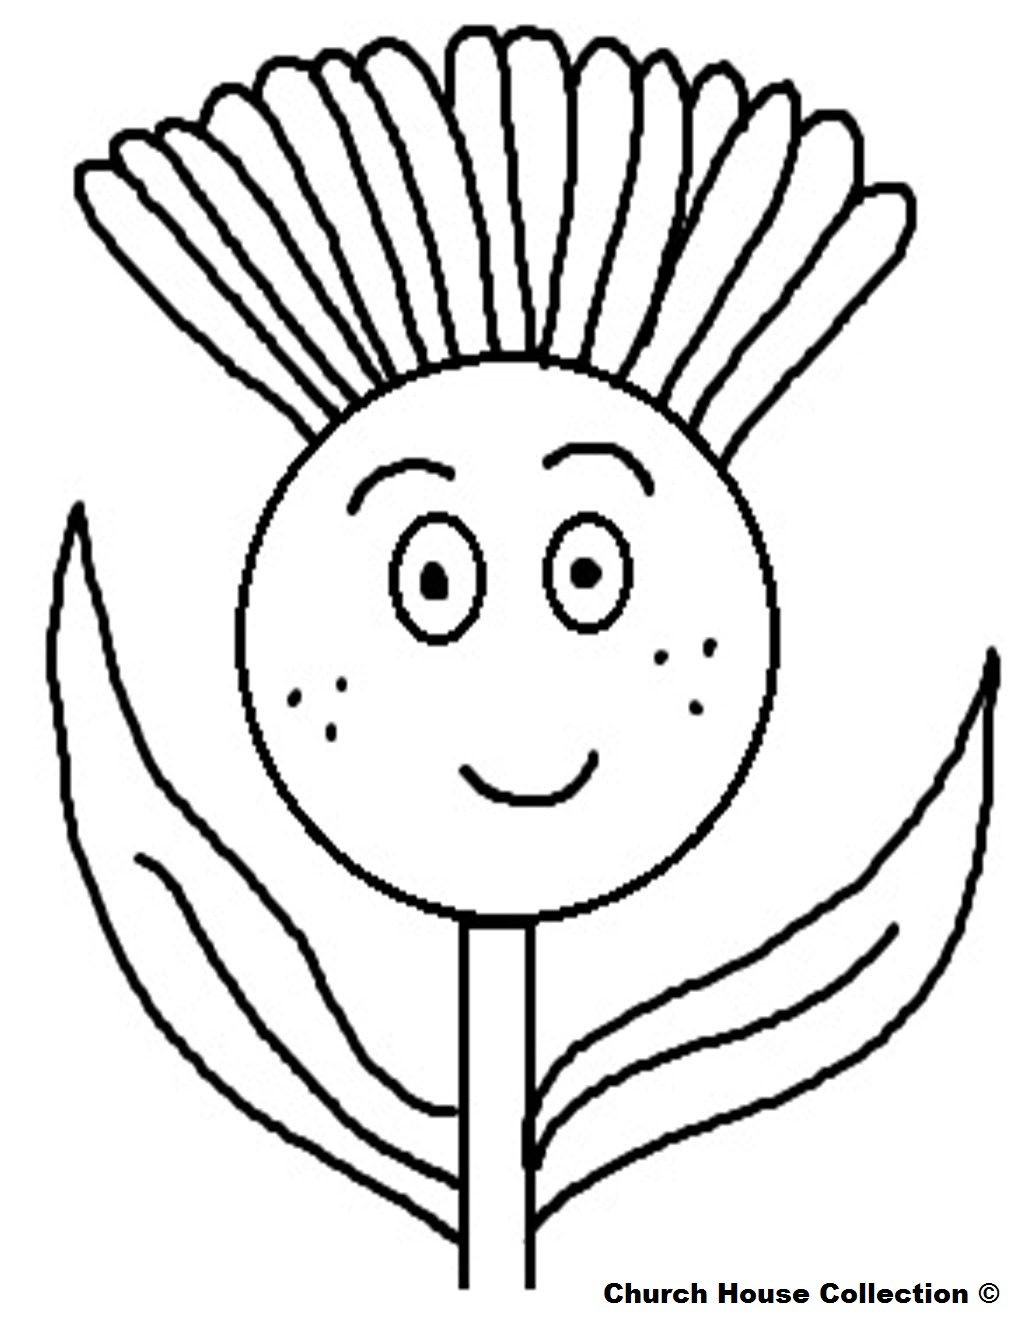 Spring coloring pages for church - See All Spring Coloring Pages